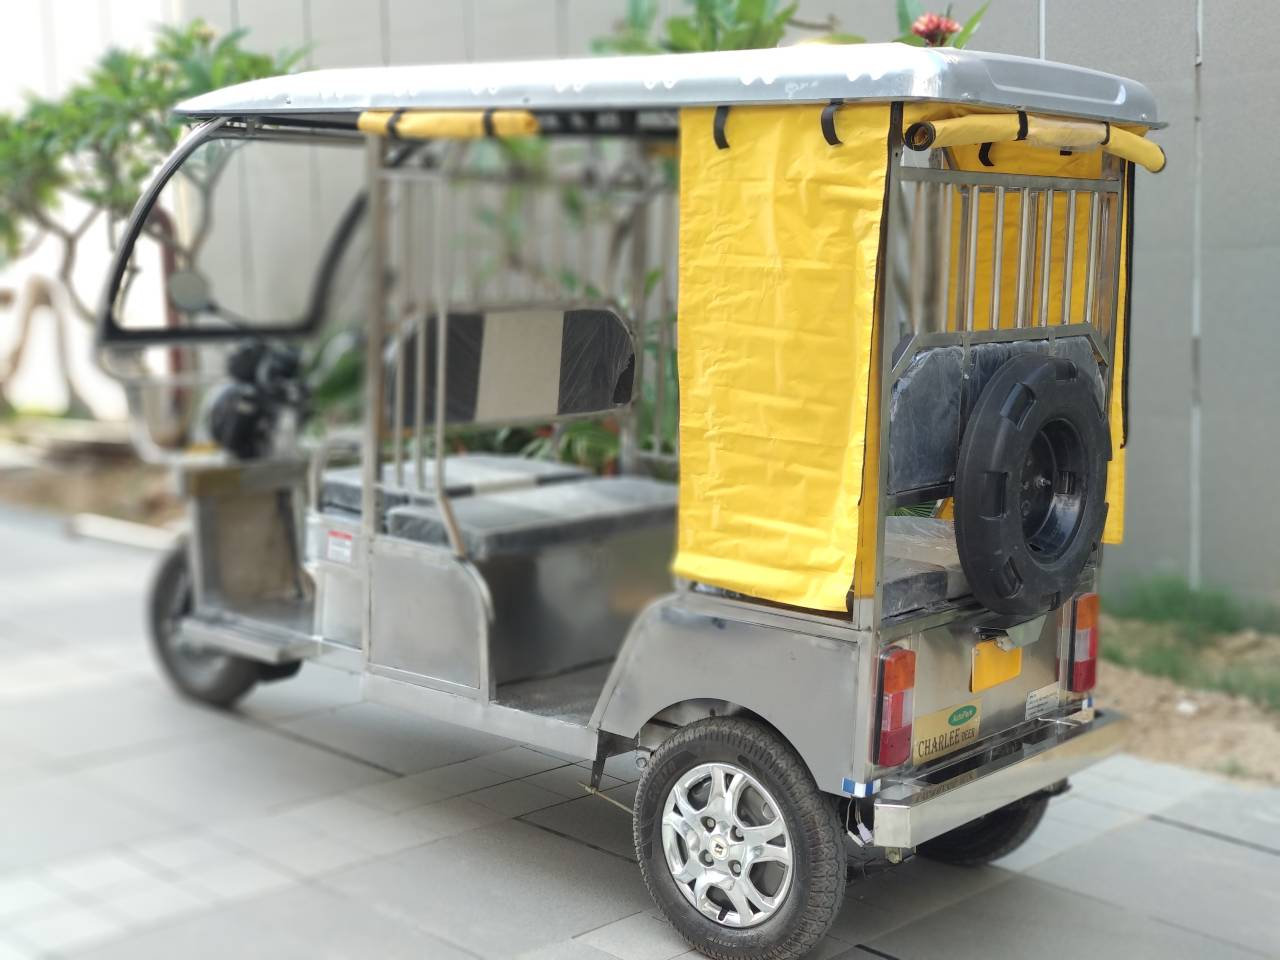 These models have an extended life cycle of around five years and is expected to cater to a demand that is annually estimated to be around 6 lakh E-rickshaws in India. (Image: Jindal Stainless)